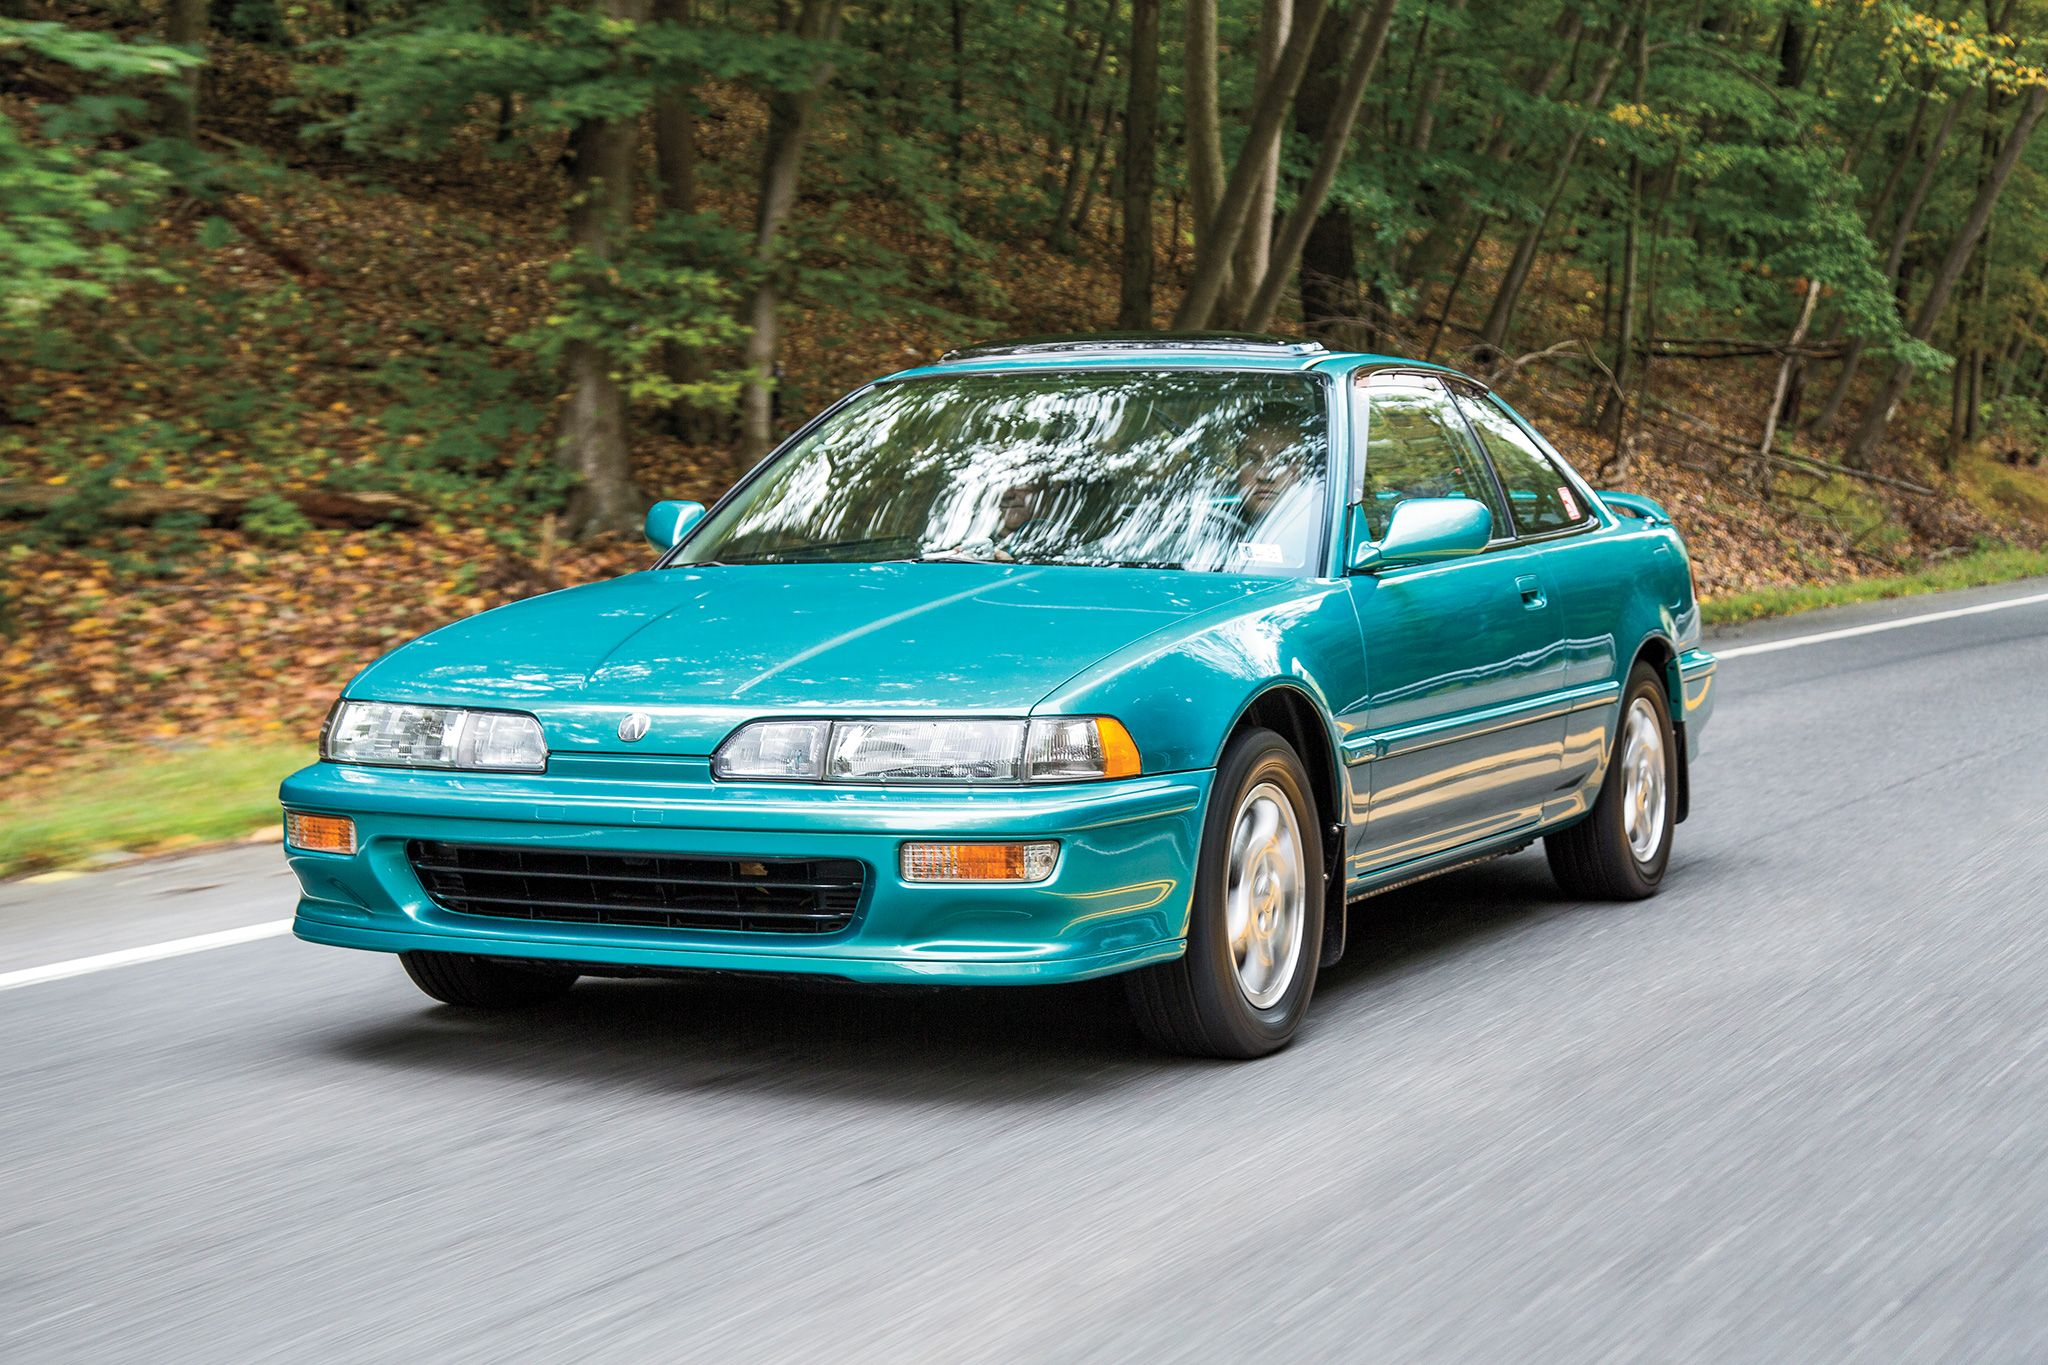 Collectible Classic: 1992-1993 Acura Integra GS-RIs A Car